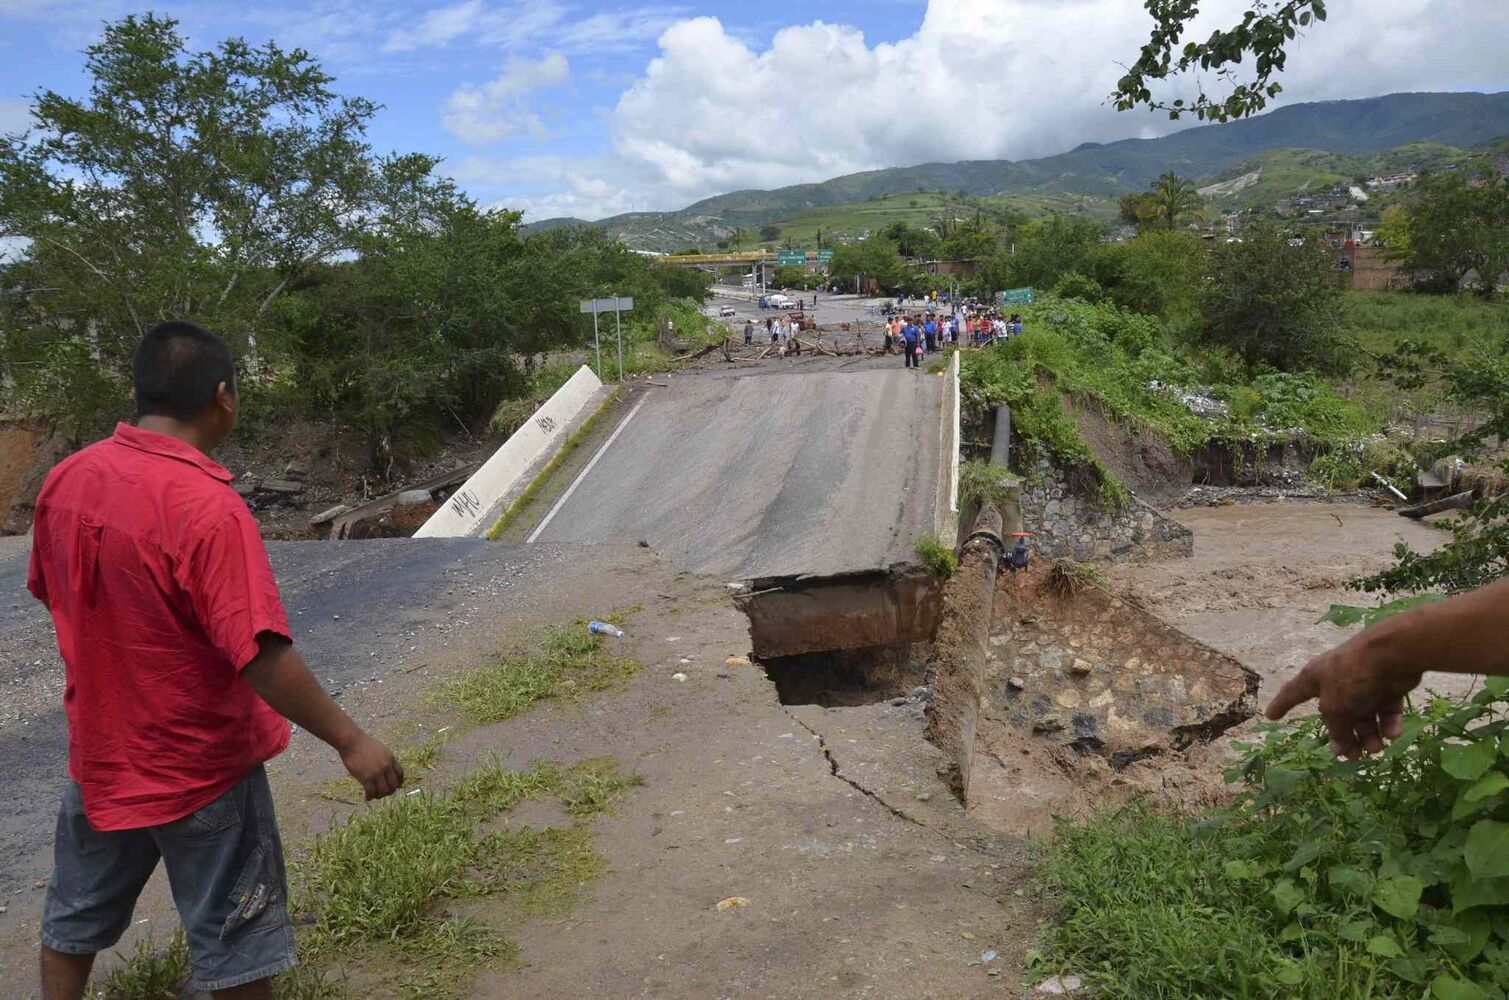 A man looks at a collapsed bridge over the Huacapa River near the town of Petaquillas, Mexico, Tuesday, Sept. 17, 2013.